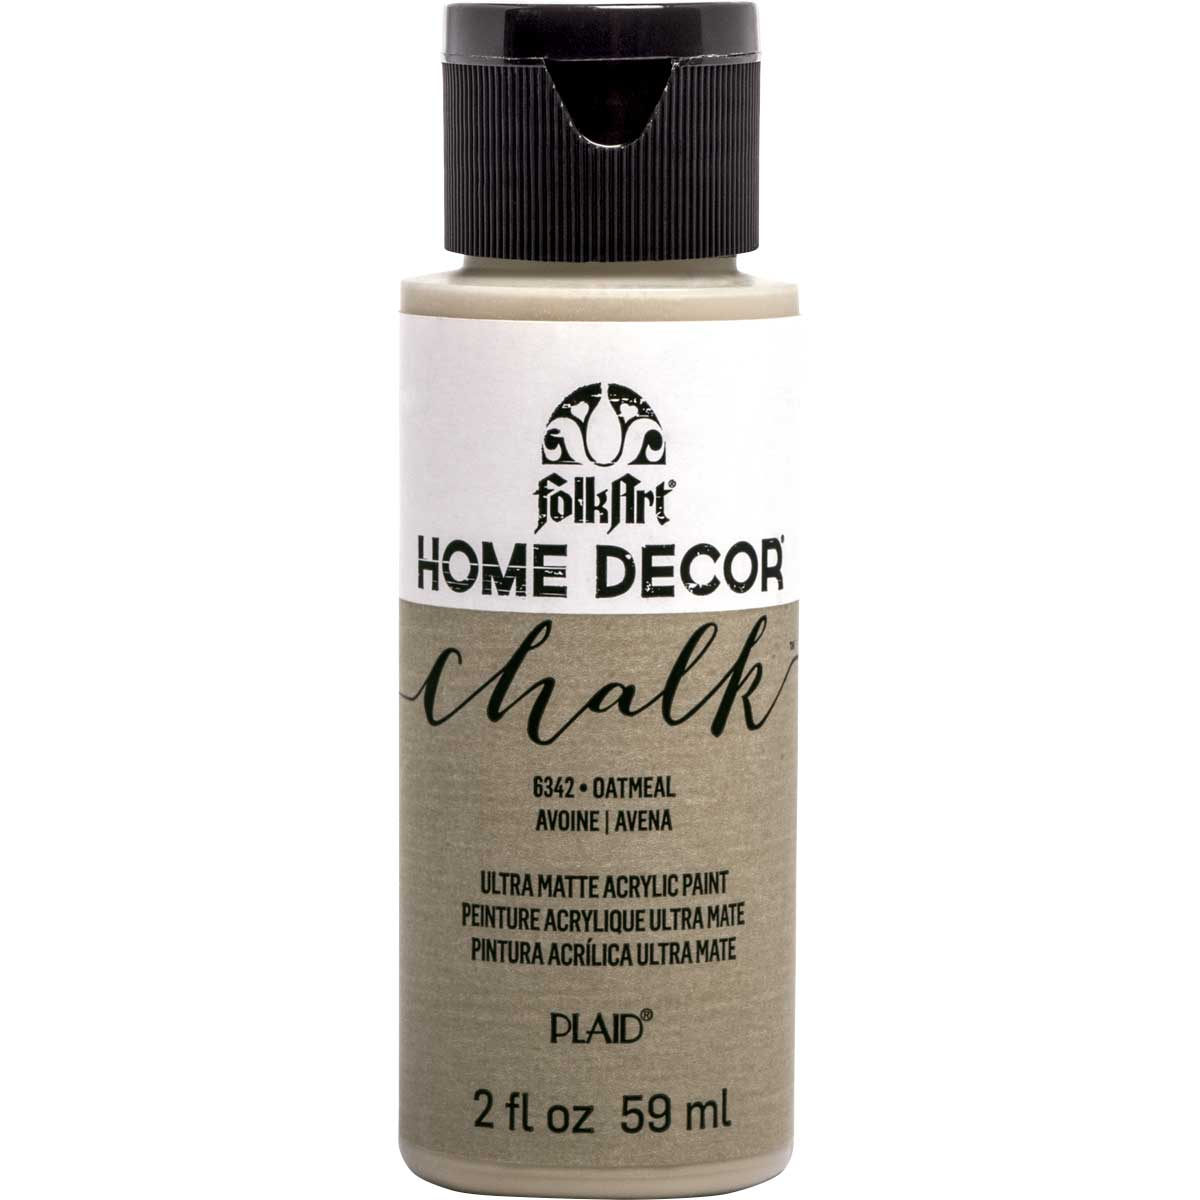 FolkArt ® Home Decor™ Chalk - Oatmeal, 2 oz. - 6342